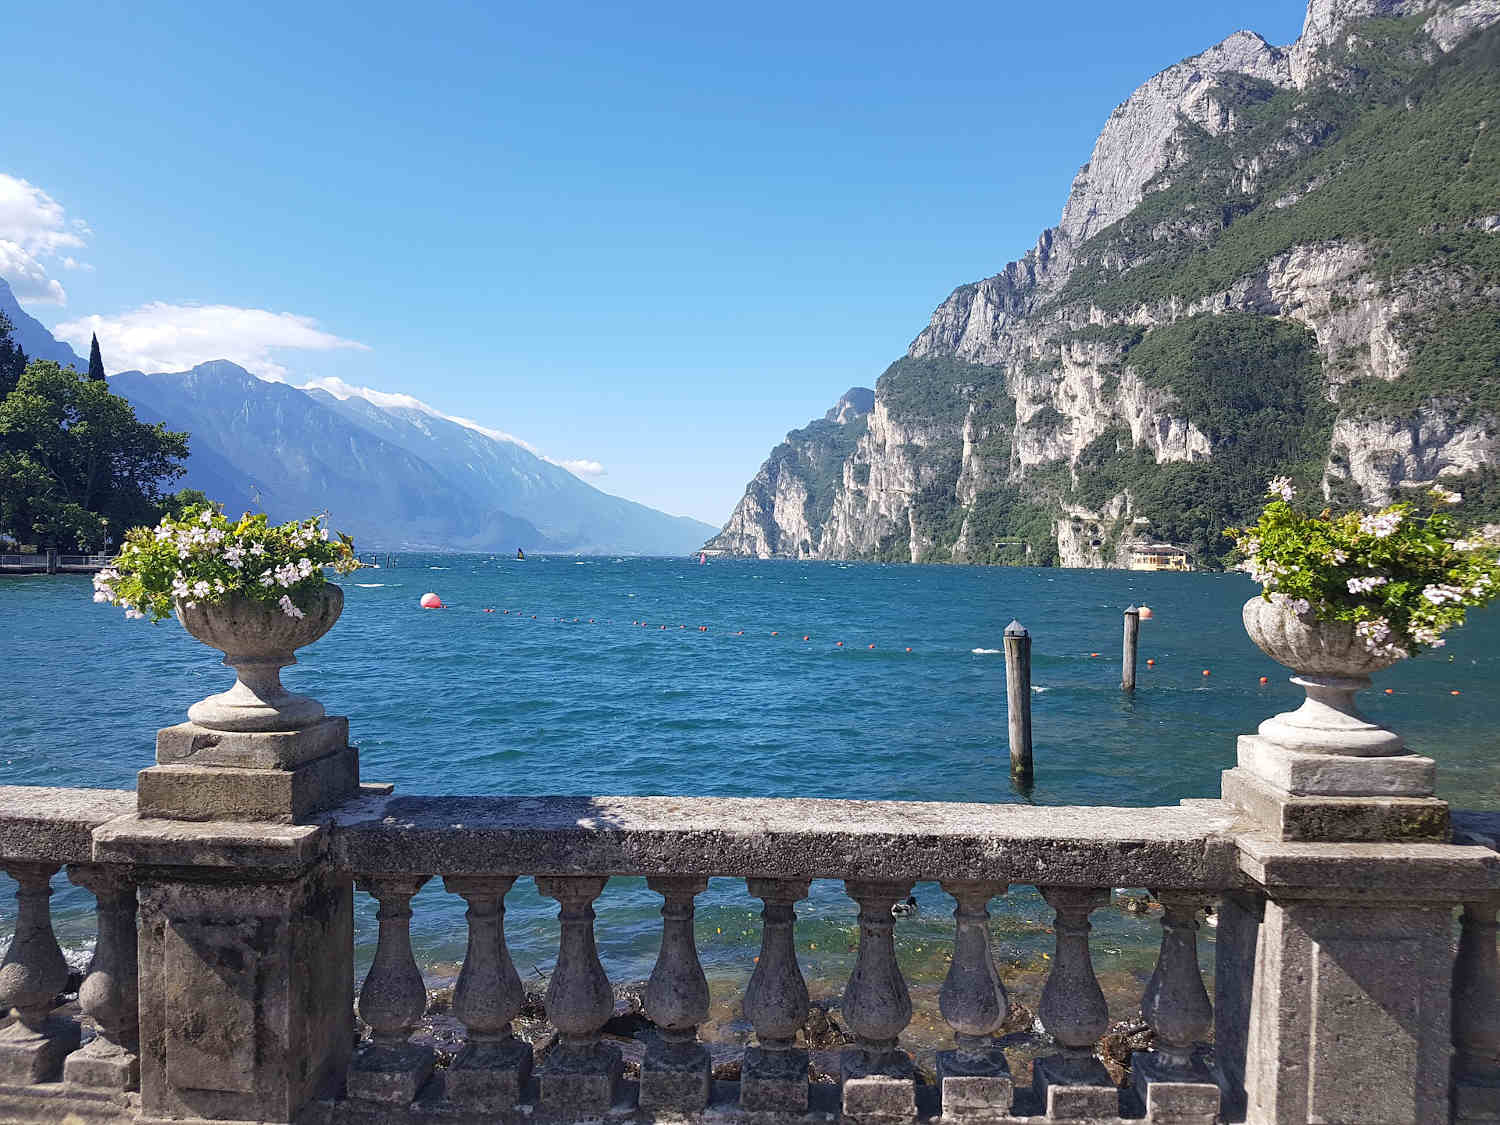 Lake Garda House Sale & Rent, here are the opportunities…